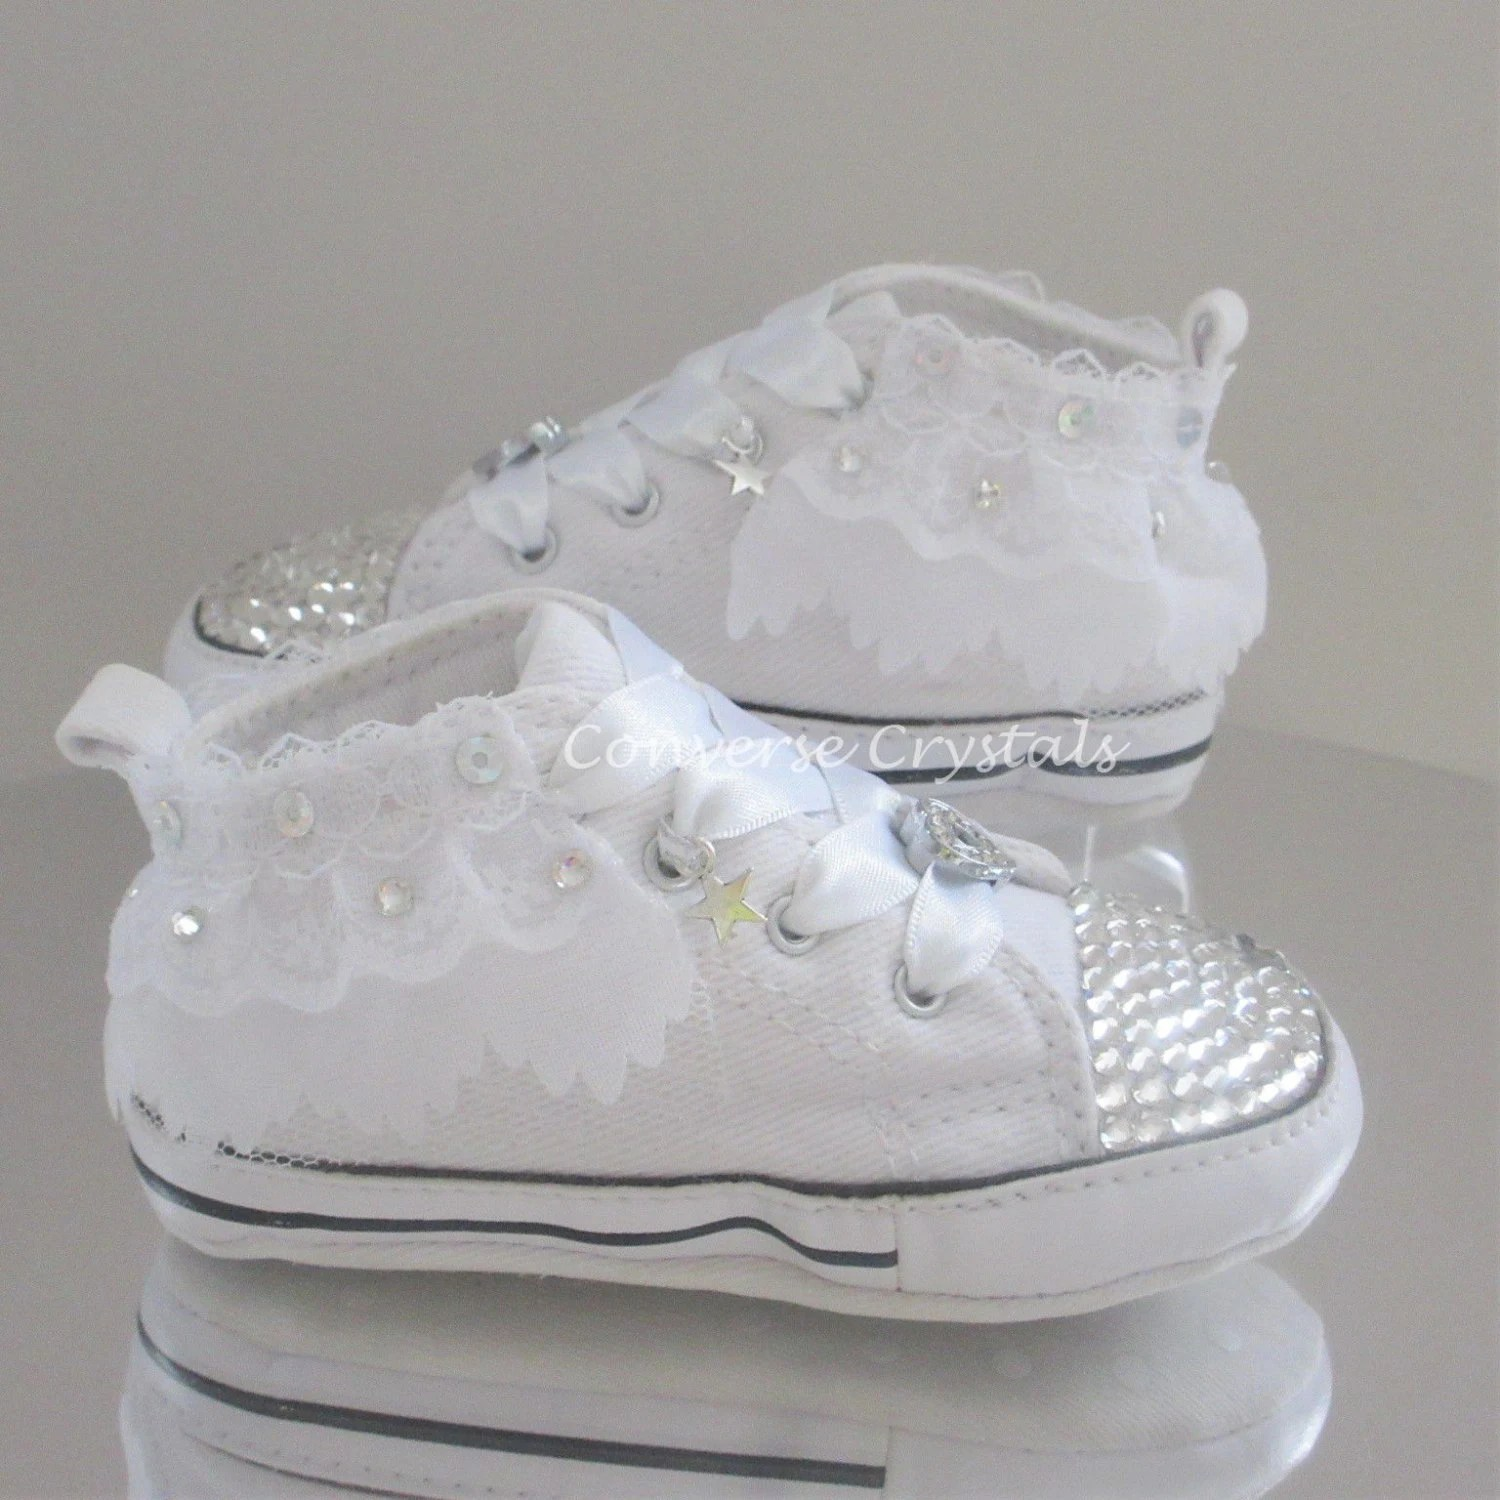 Baby White Converse Pram Shoes Baby Crib Custom Crystal Bling Converse With Lace Trim All Sizes